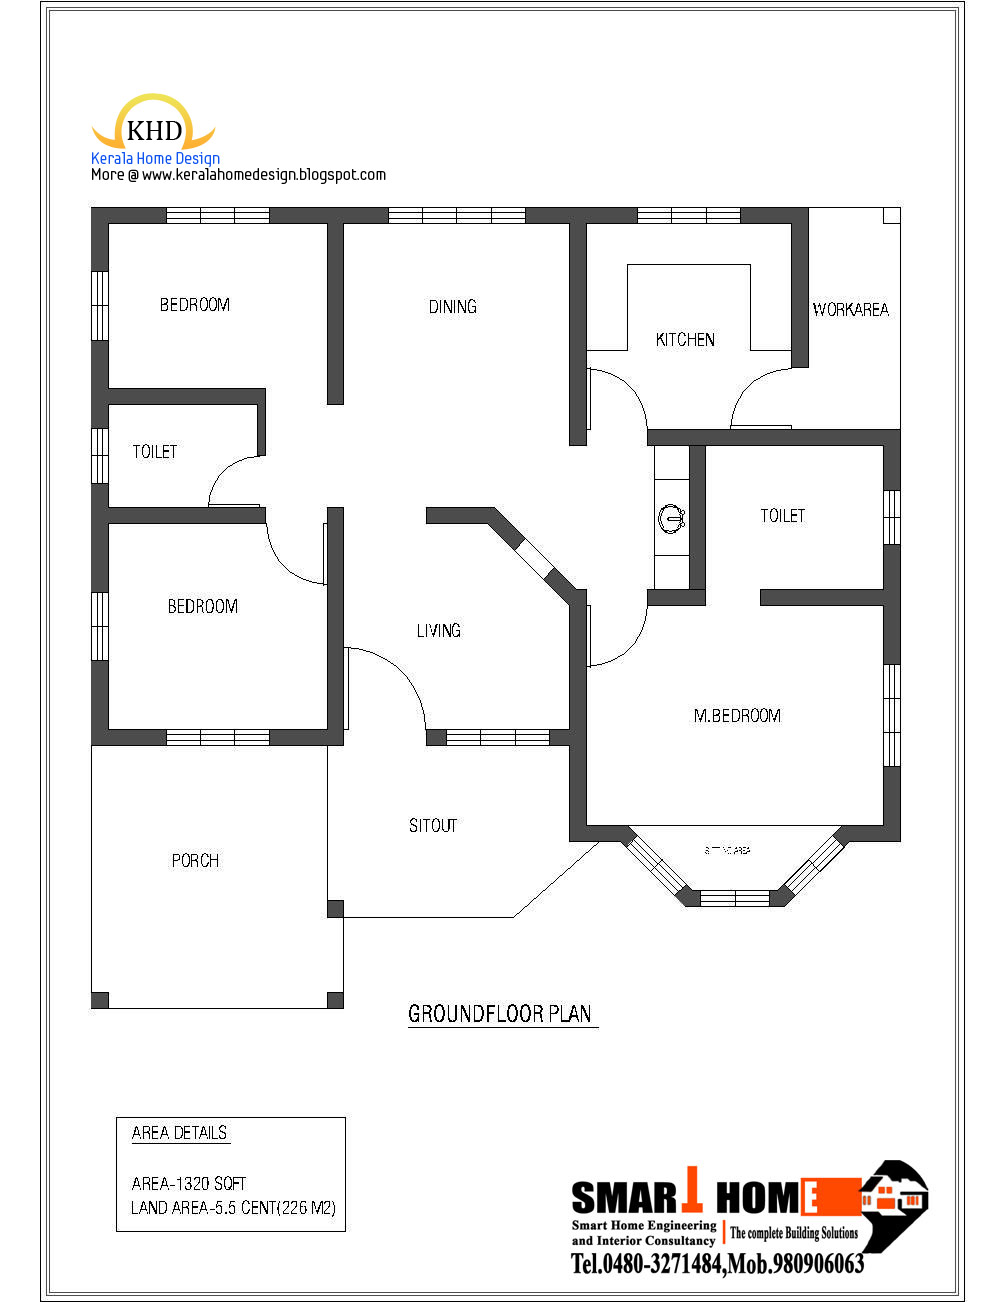 Single Floor House Plan And Elevation 1320 Sq Ft Kerala Home Design And Floor Plans: one floor house plans